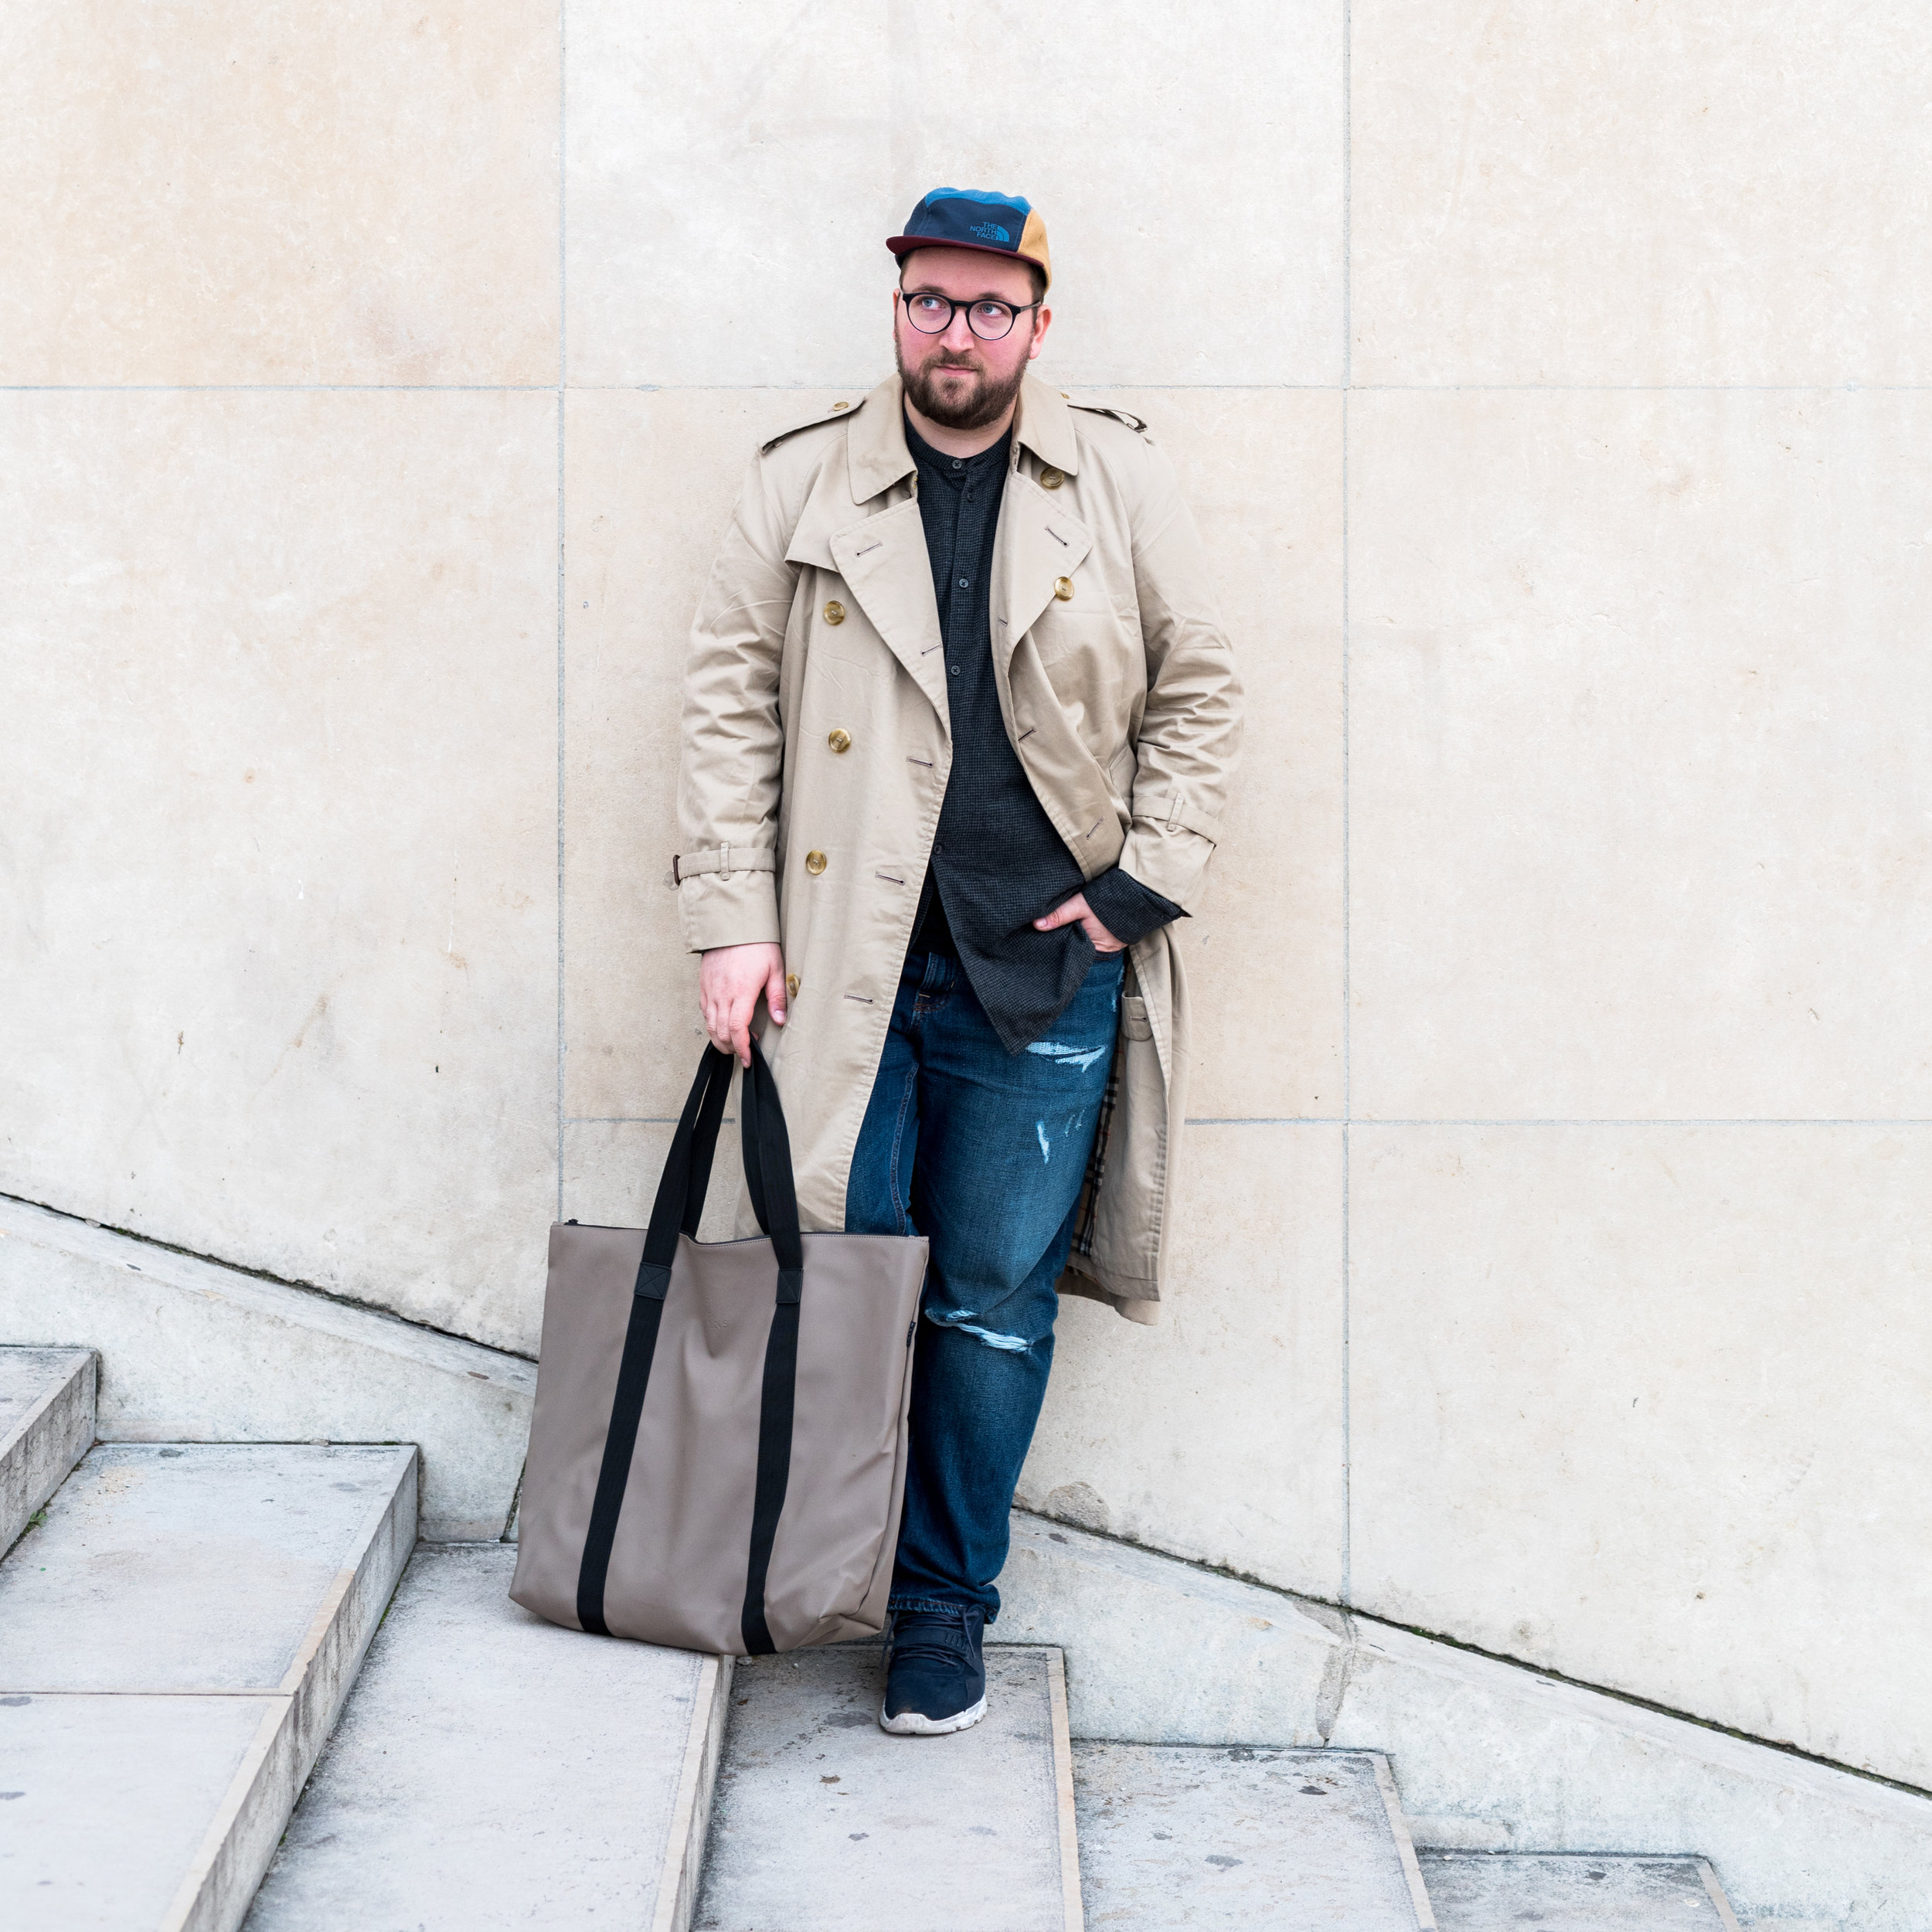 A nice tote bag to carry your stuff and groceries around by RAINS Denmark - FASHION GIFT IDEAS - THE ULTIMATE GIFT LIST FOR MODERN MEN